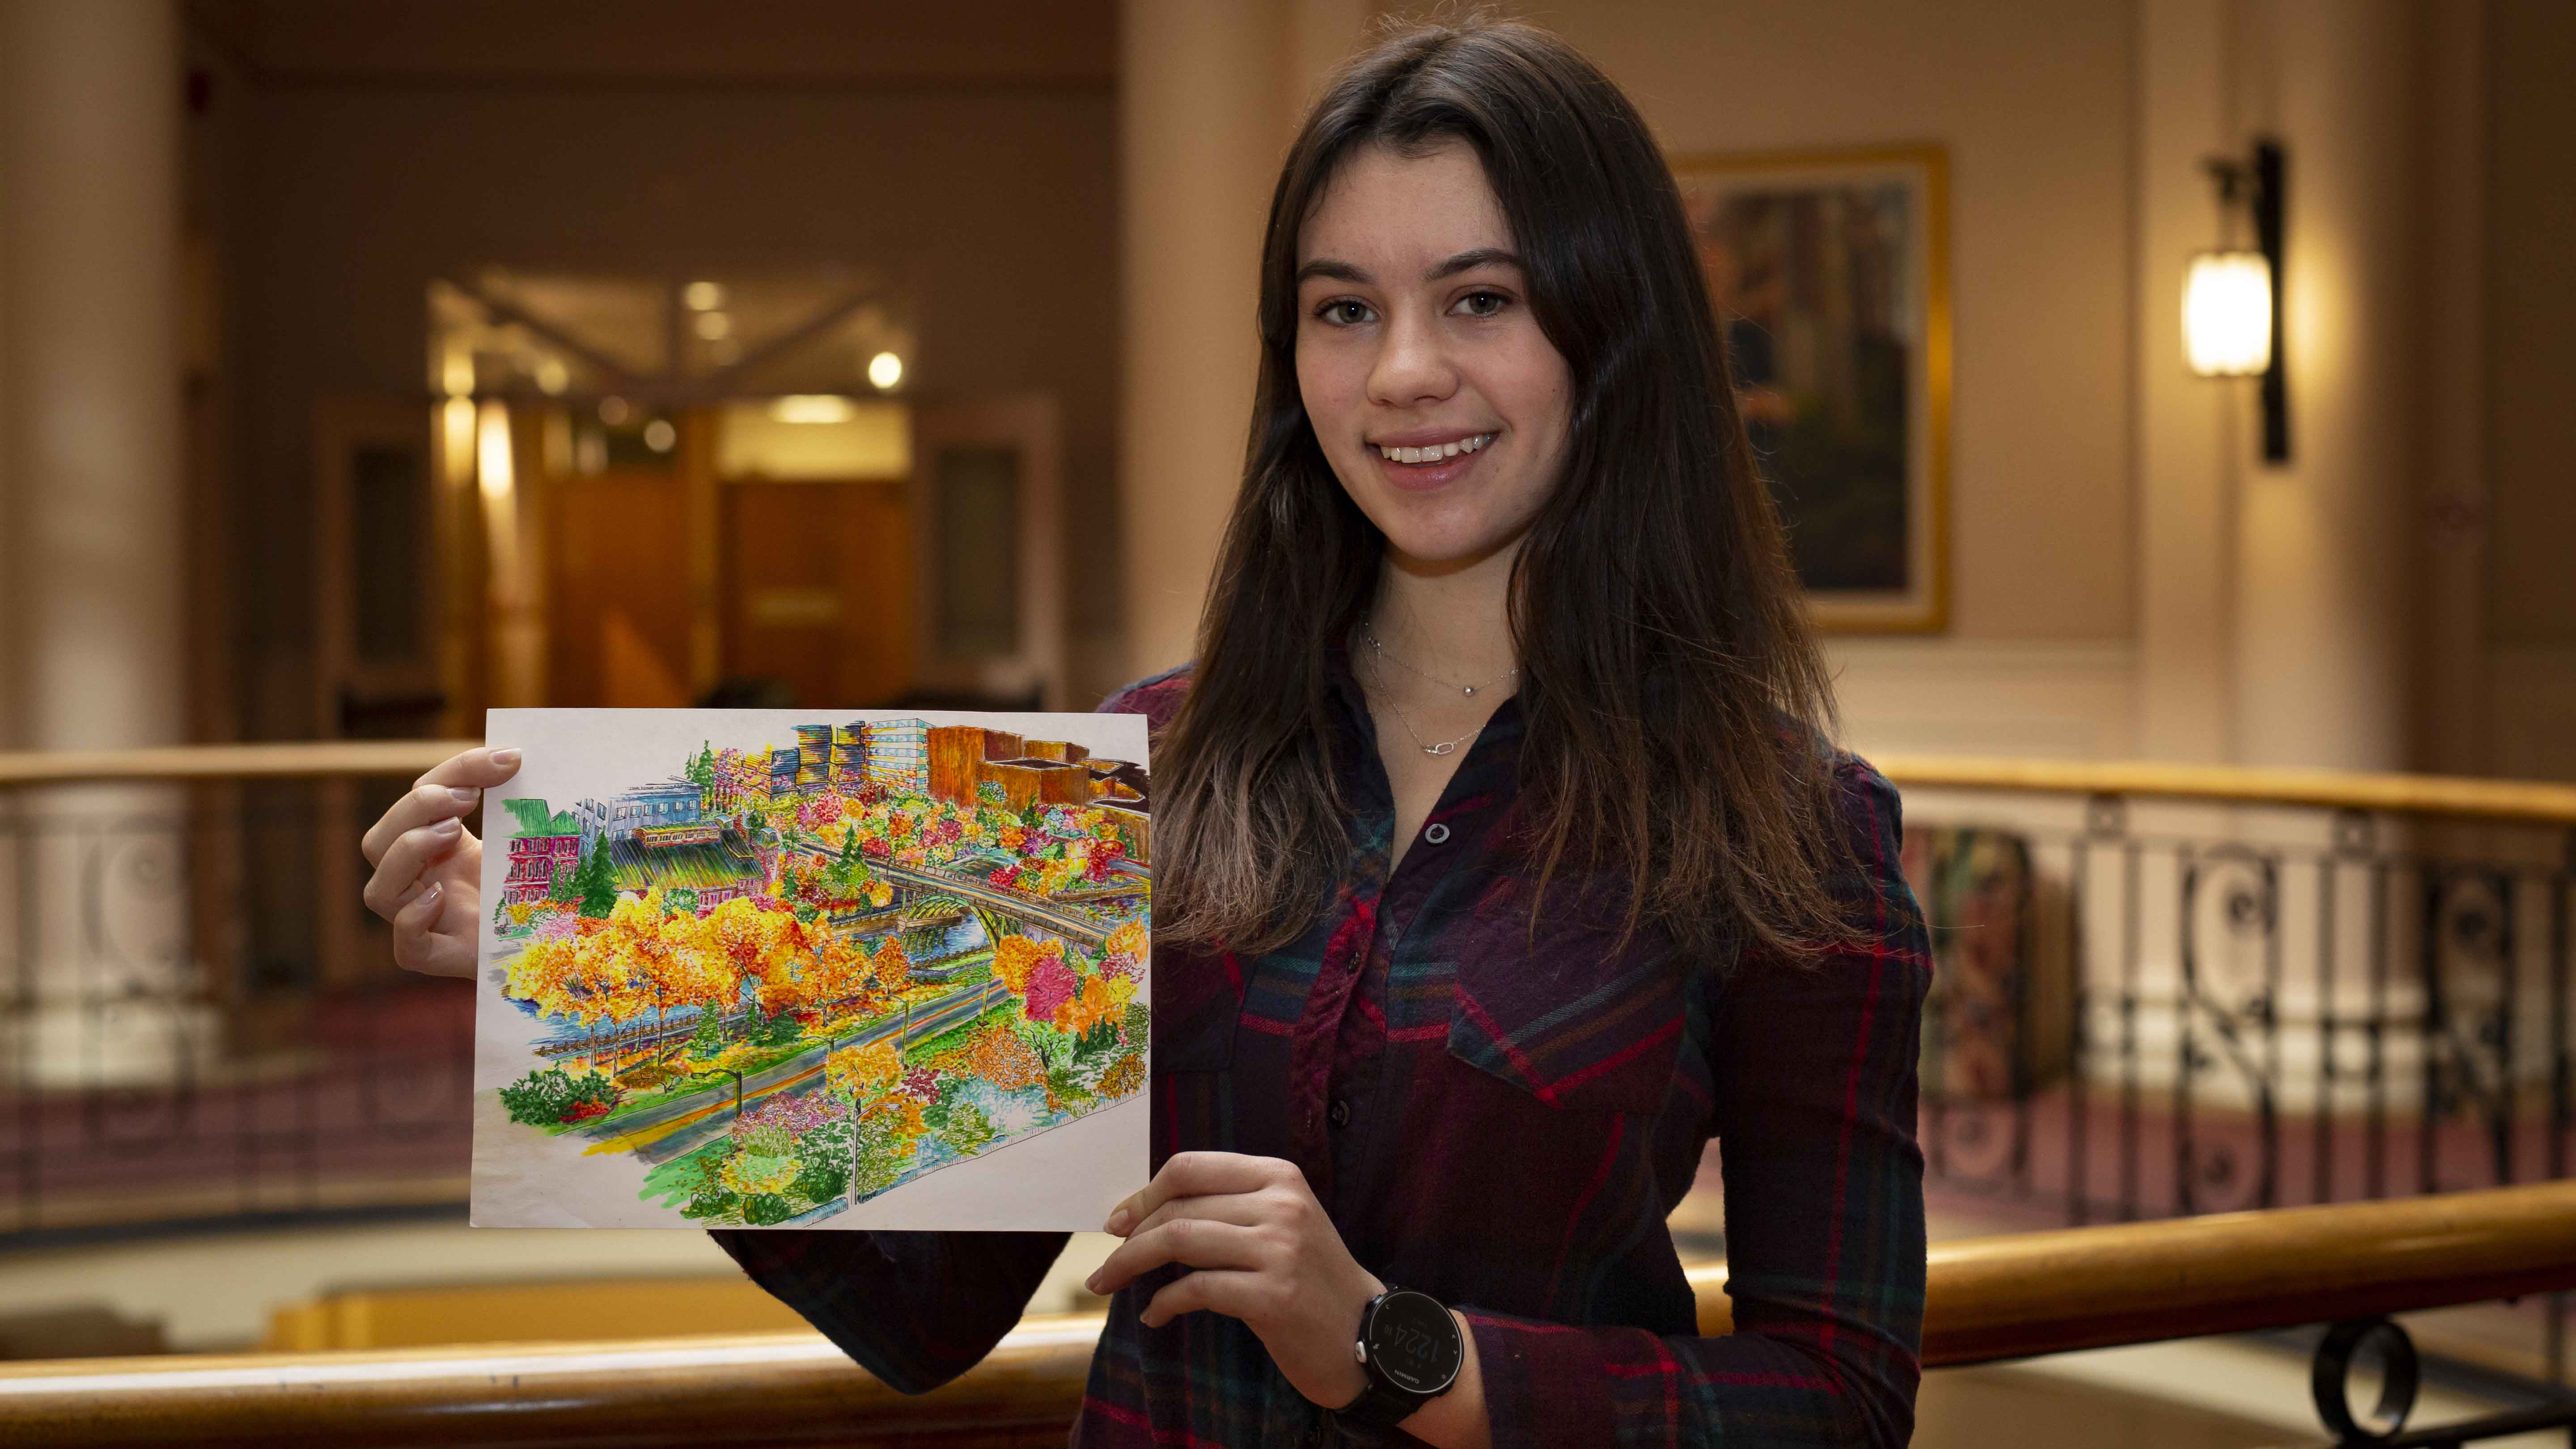 Kira F. Robinson holding her artwork made of highlighters and pens.